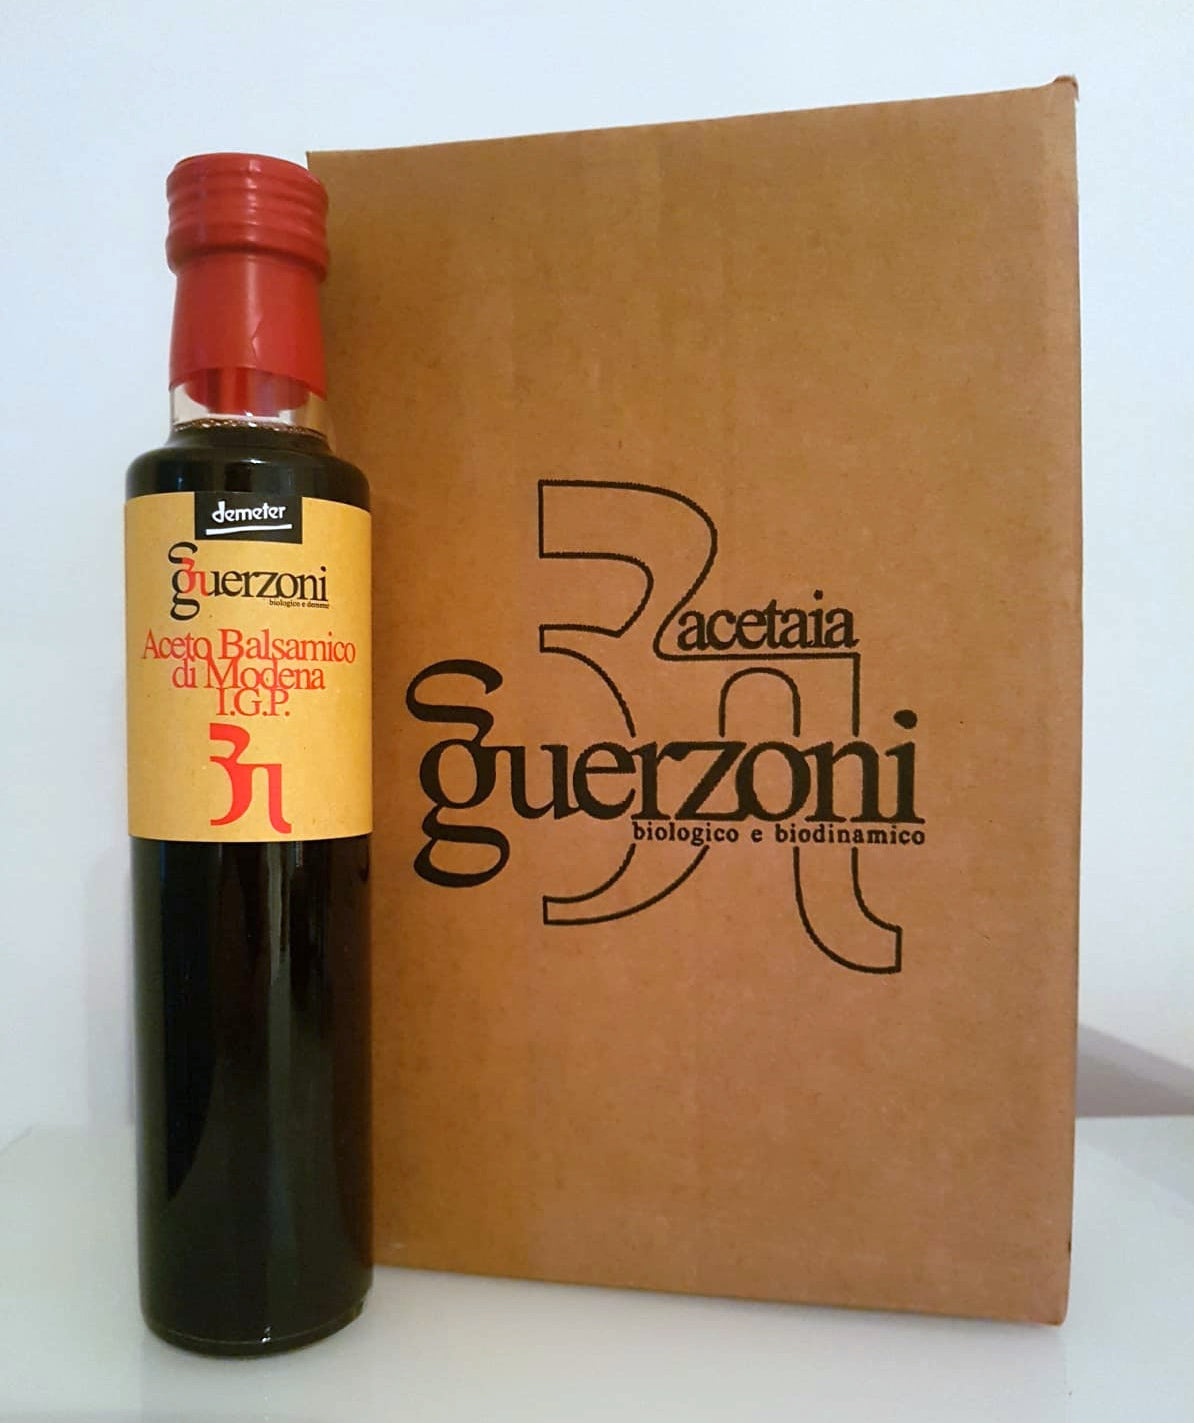 NEW! Guerzoni Organic & Biodynamic Balsamic Vinegar of Modena PGI - Density 1.16 - Box of 6